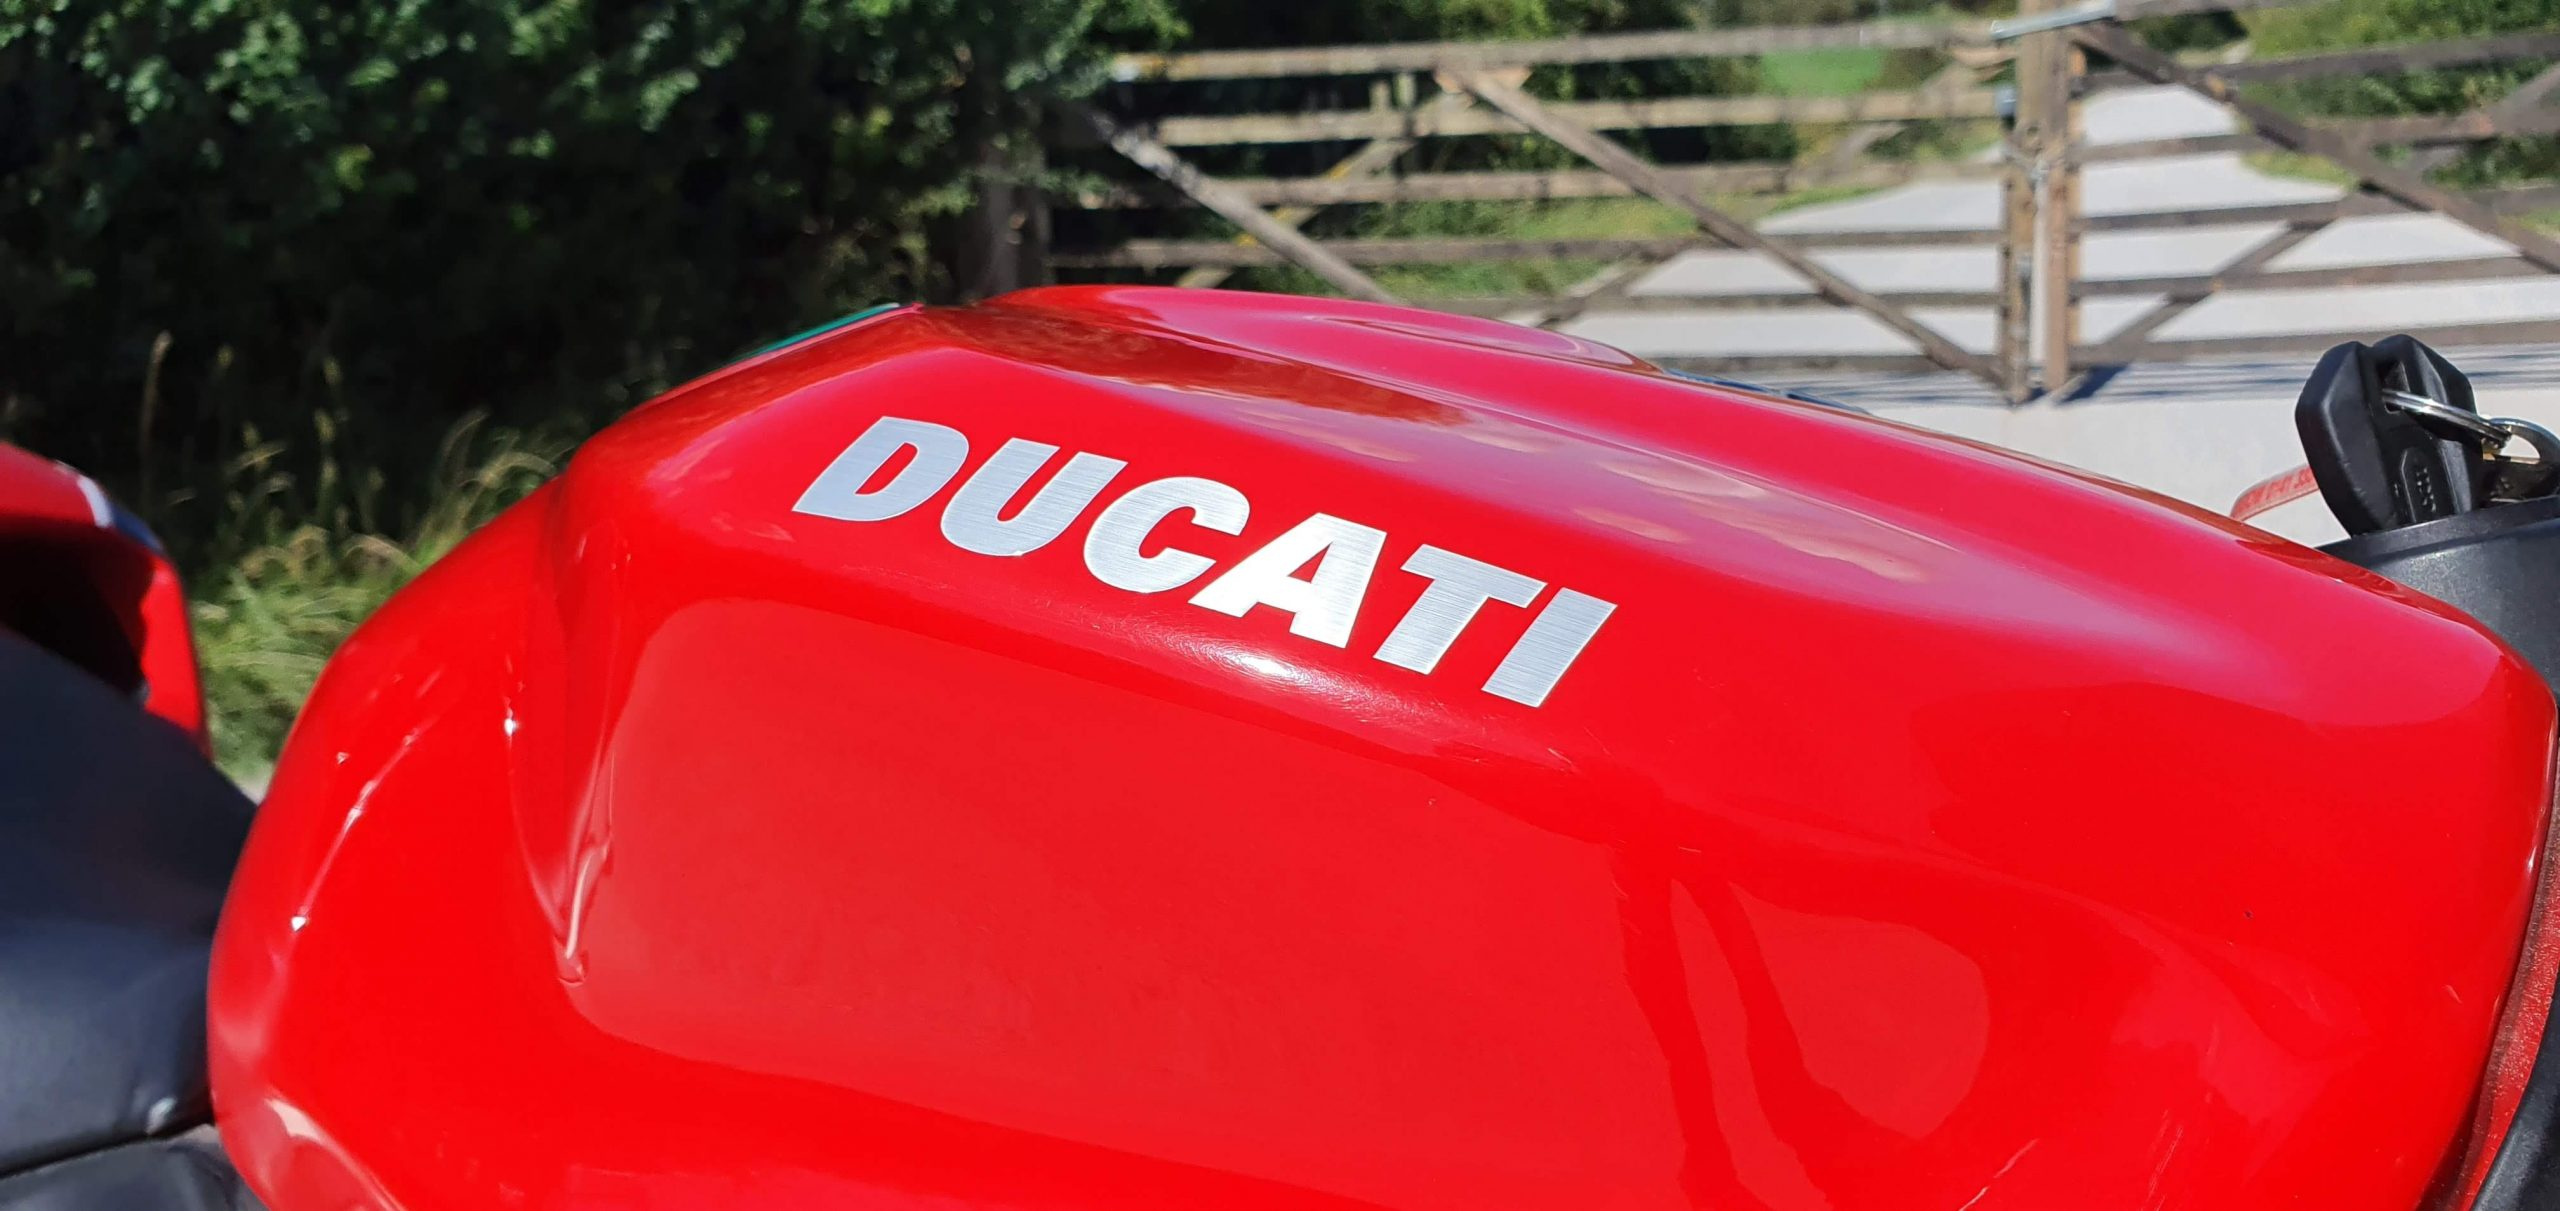 Ducati 1199 Panigale Review tank